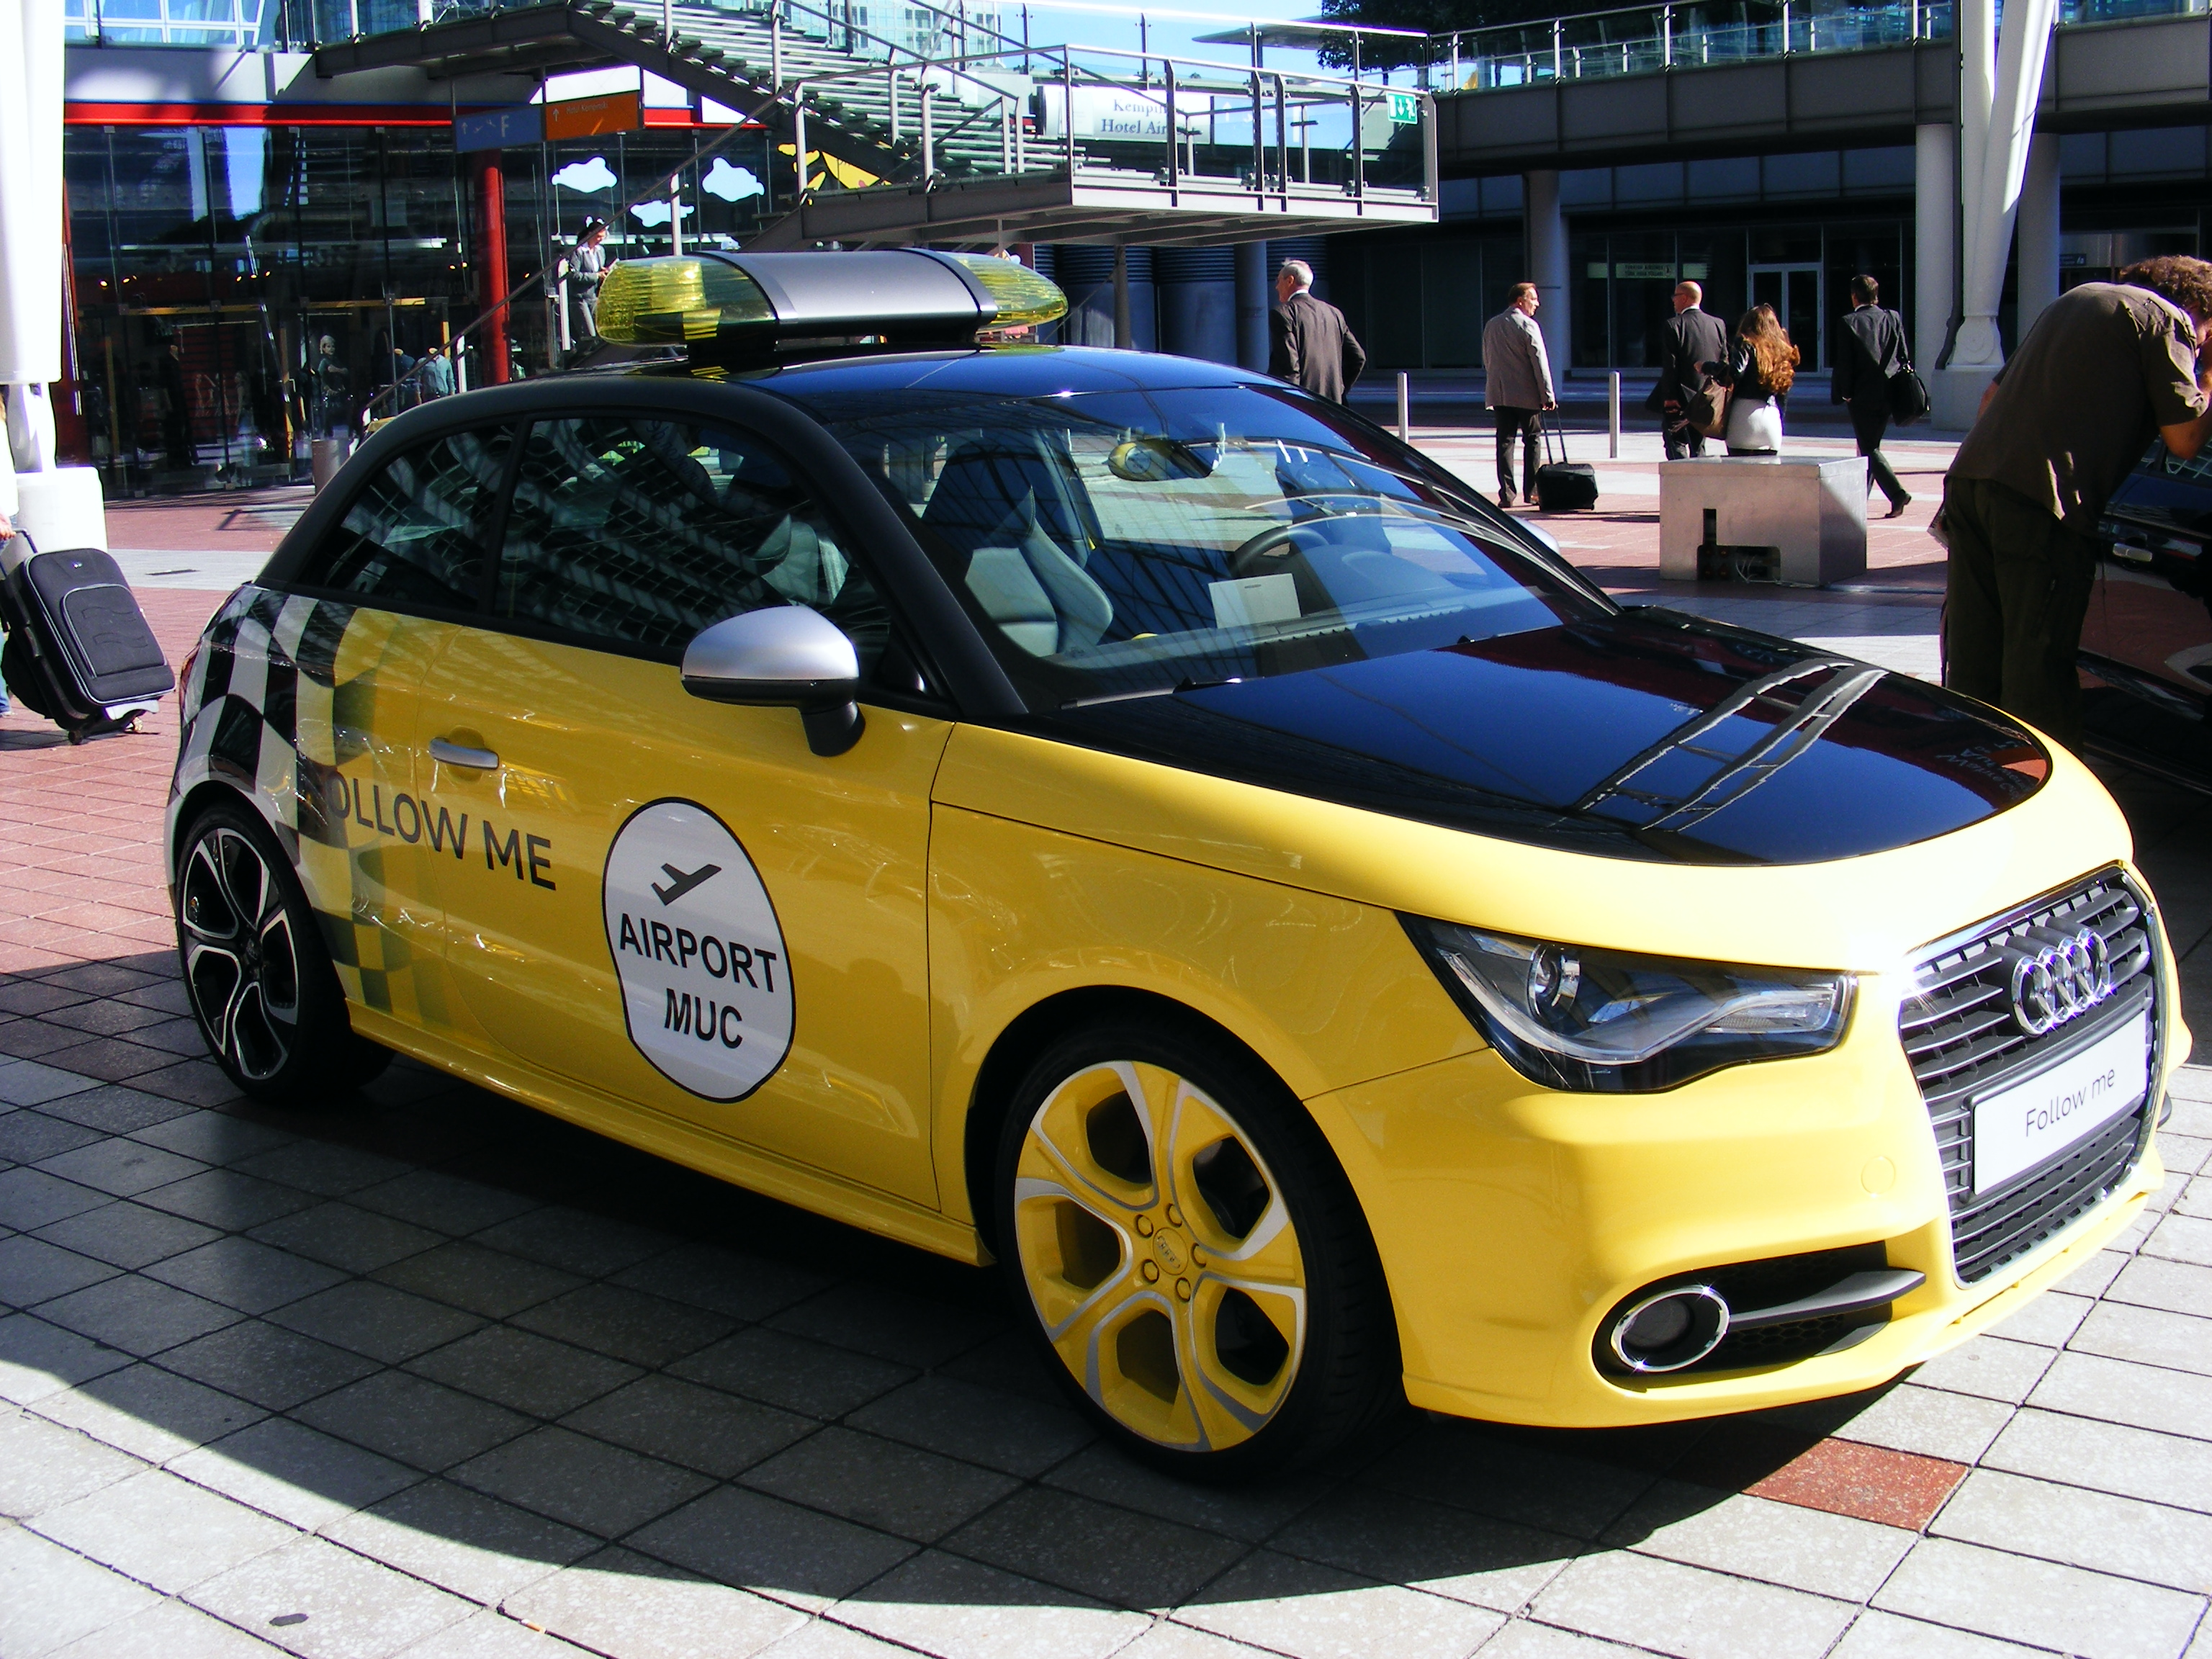 File:Audi A1 styled as a follow me car.JPG - Wikimedia Commons